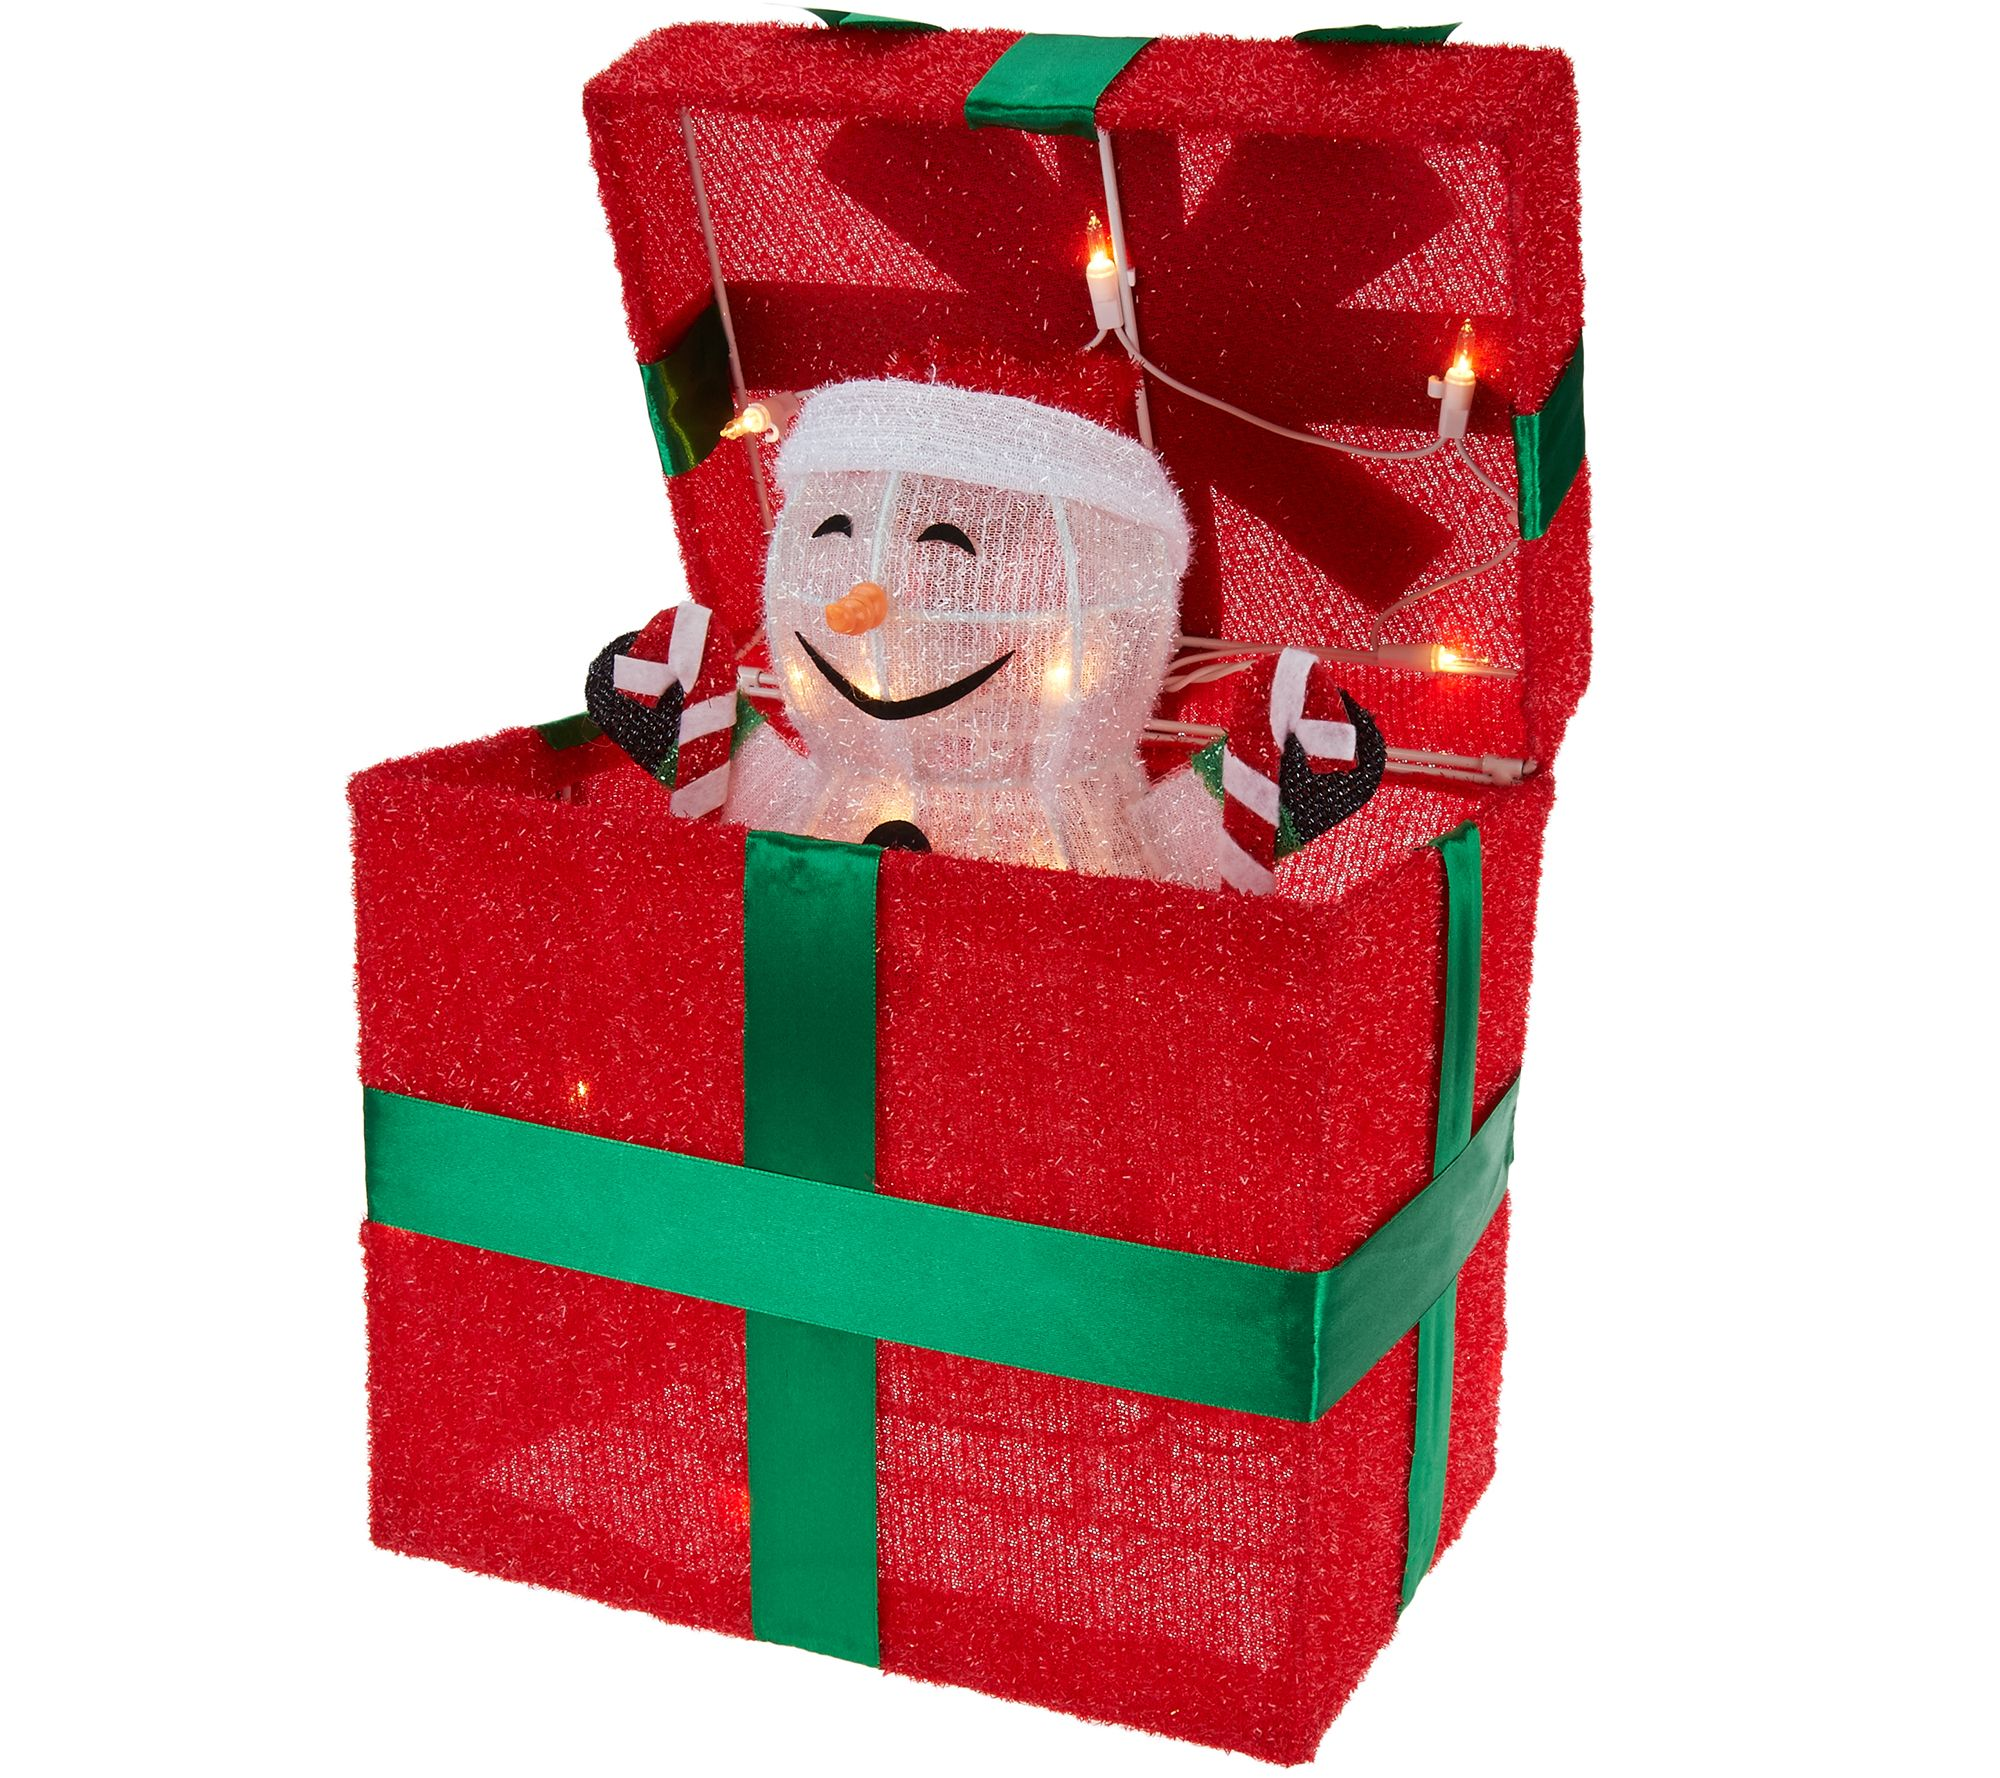 Qvc Outdoor Wall Lights: Kringle Express Outdoor Gift Box With Animated Character